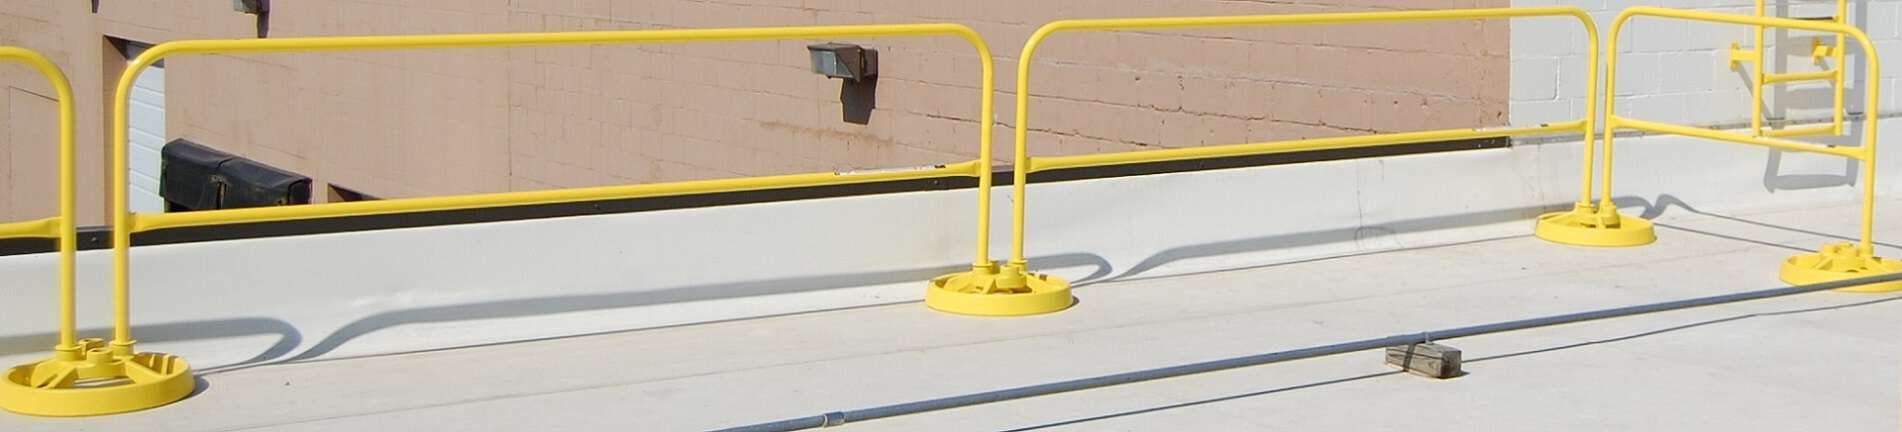 Freestanding Roof Safety Rail System